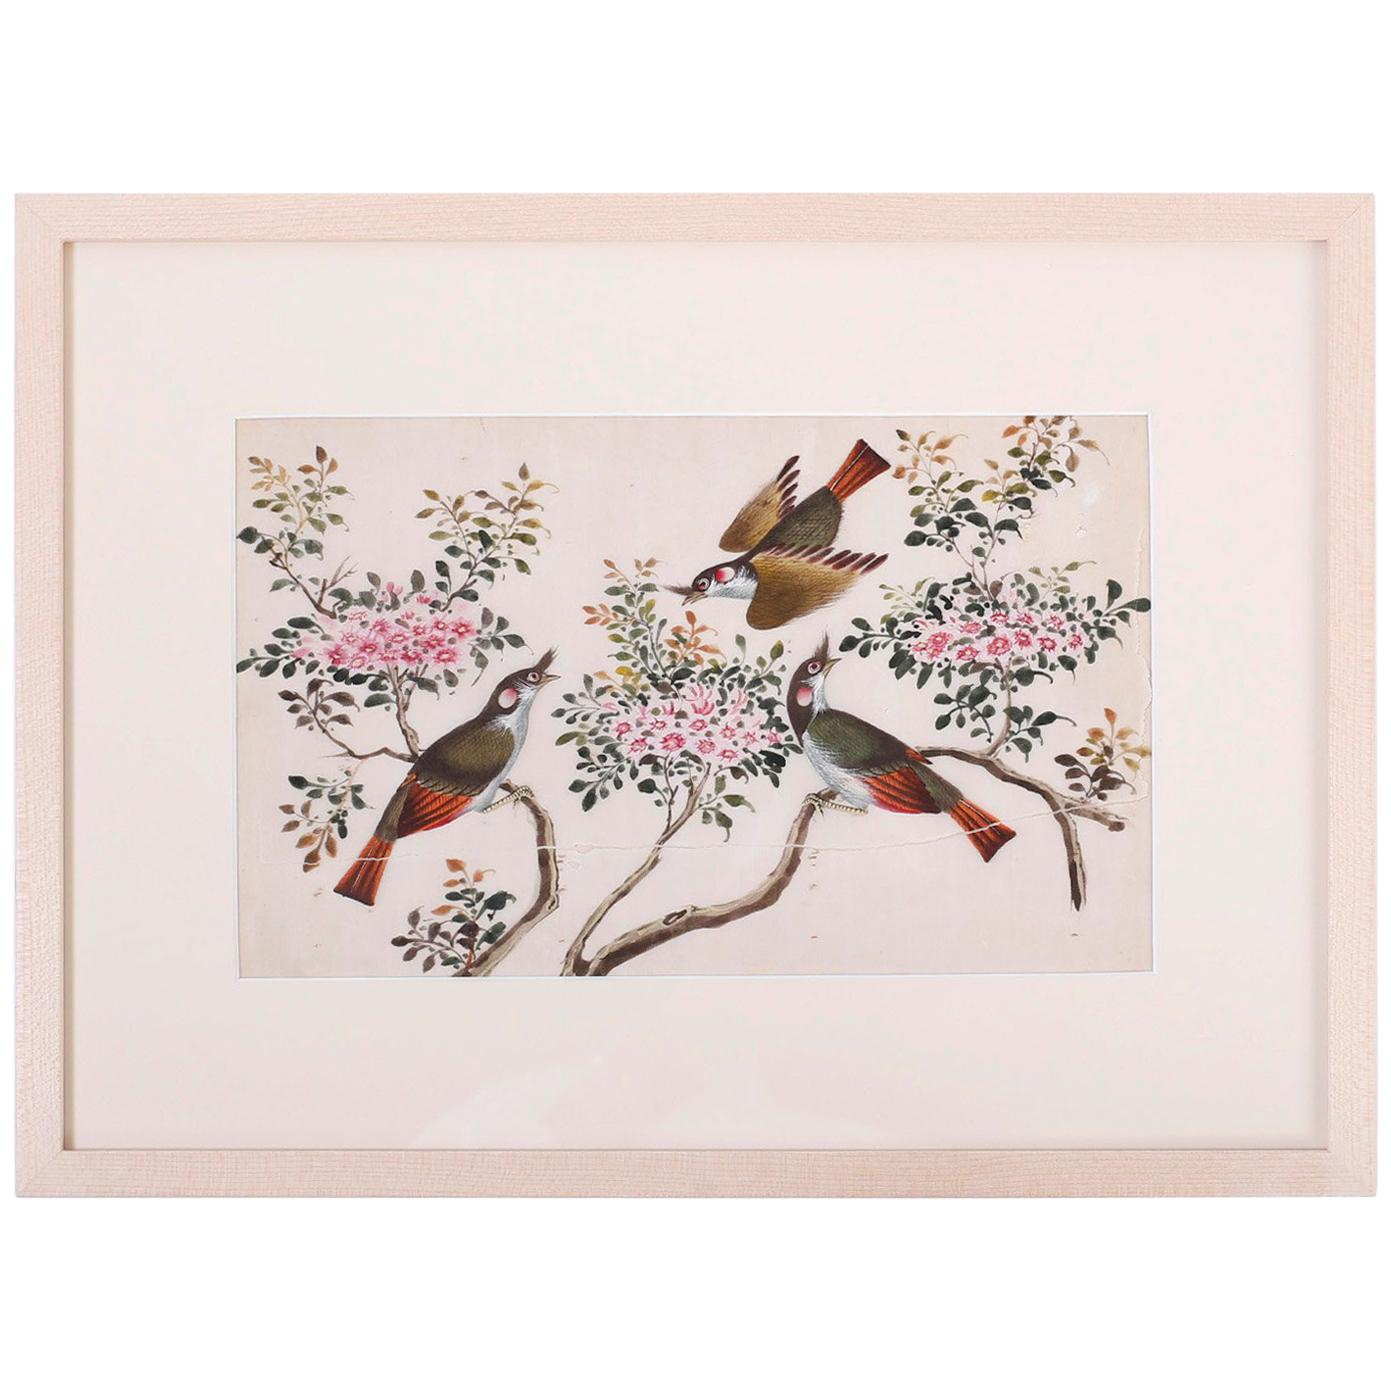 Antique Pith Painting of Birds